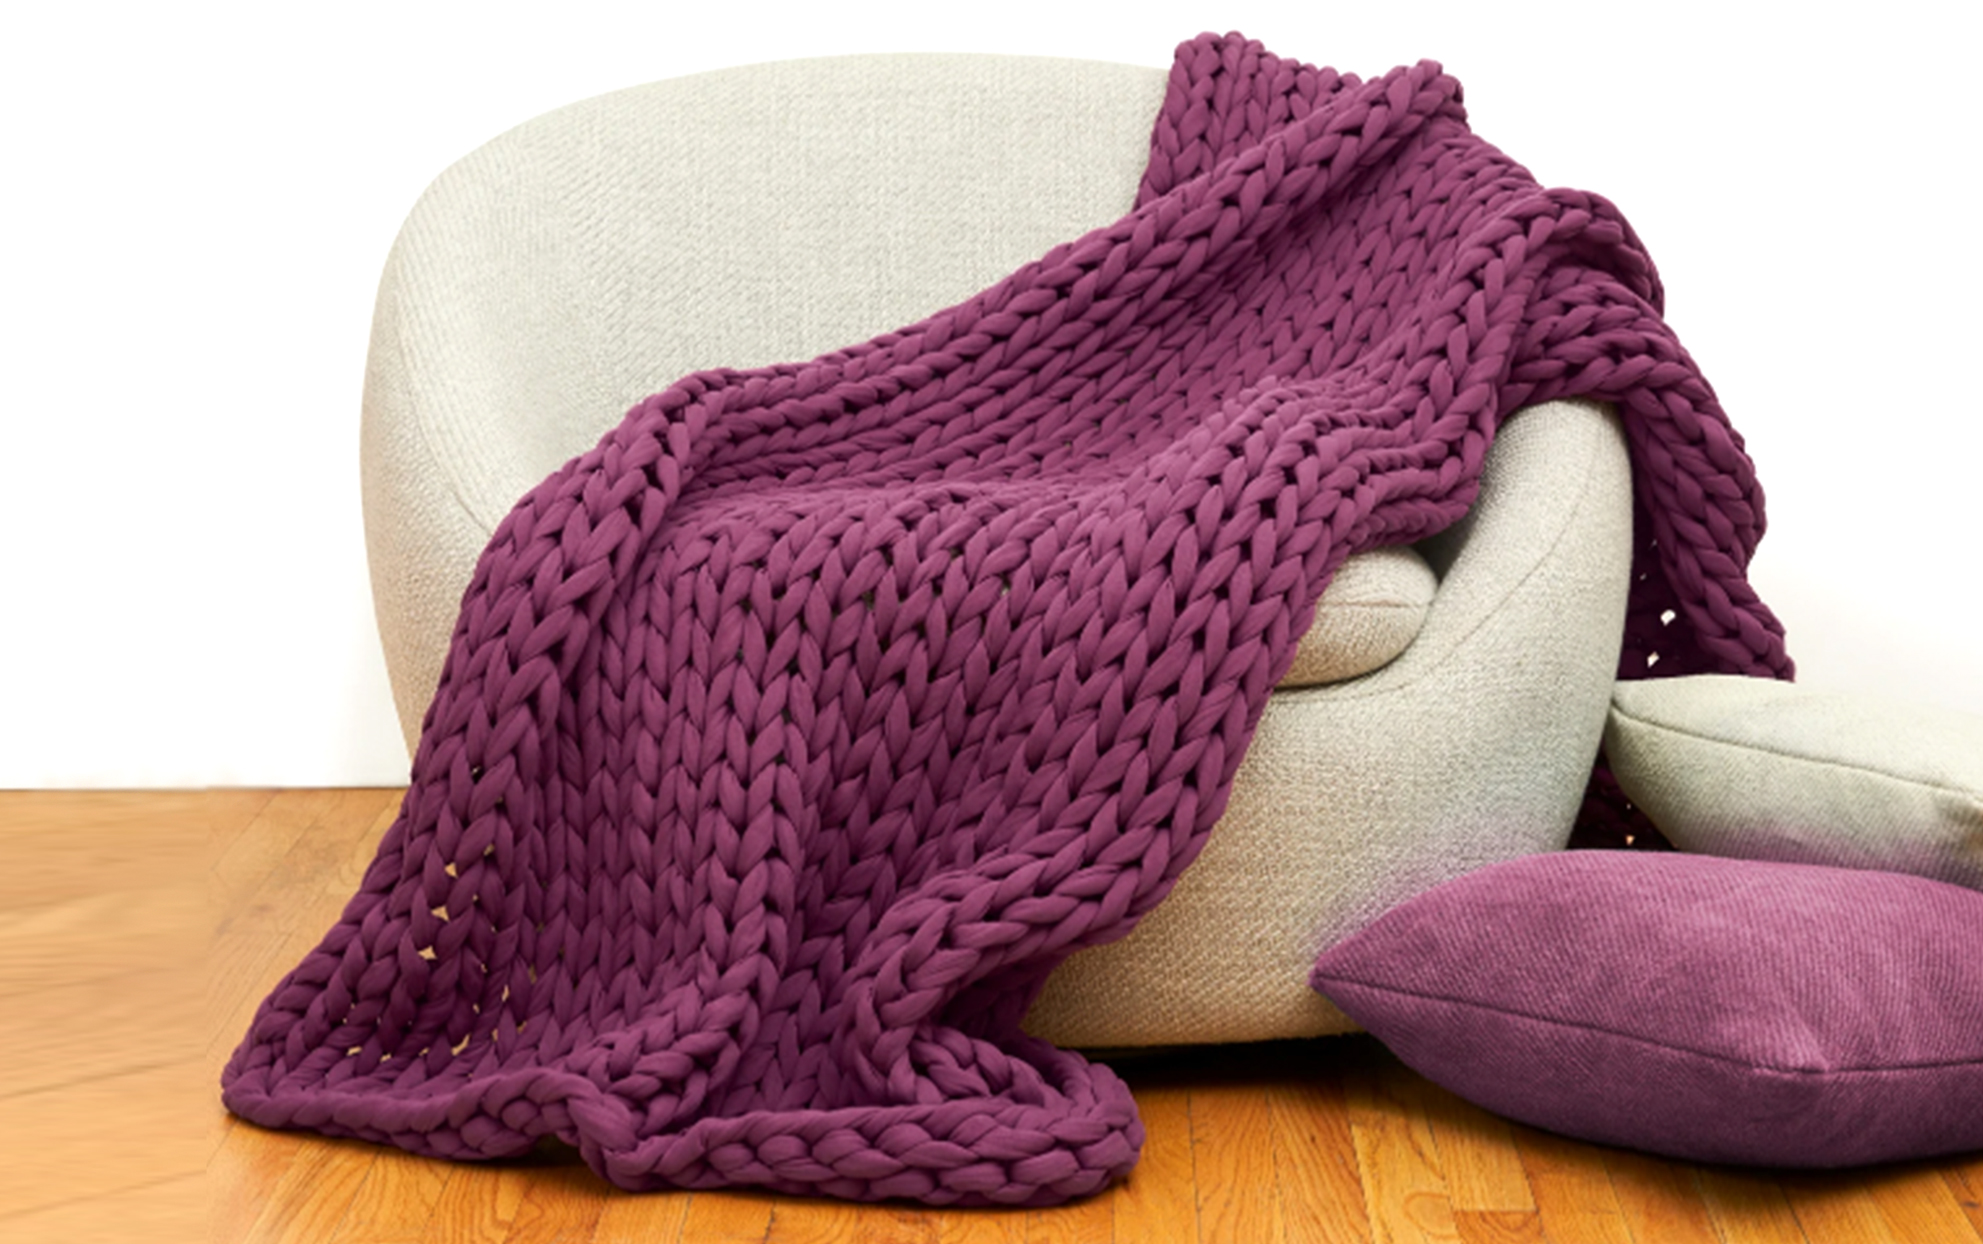 Weighted knit eggplant colored blanket on a beige chair with pillows